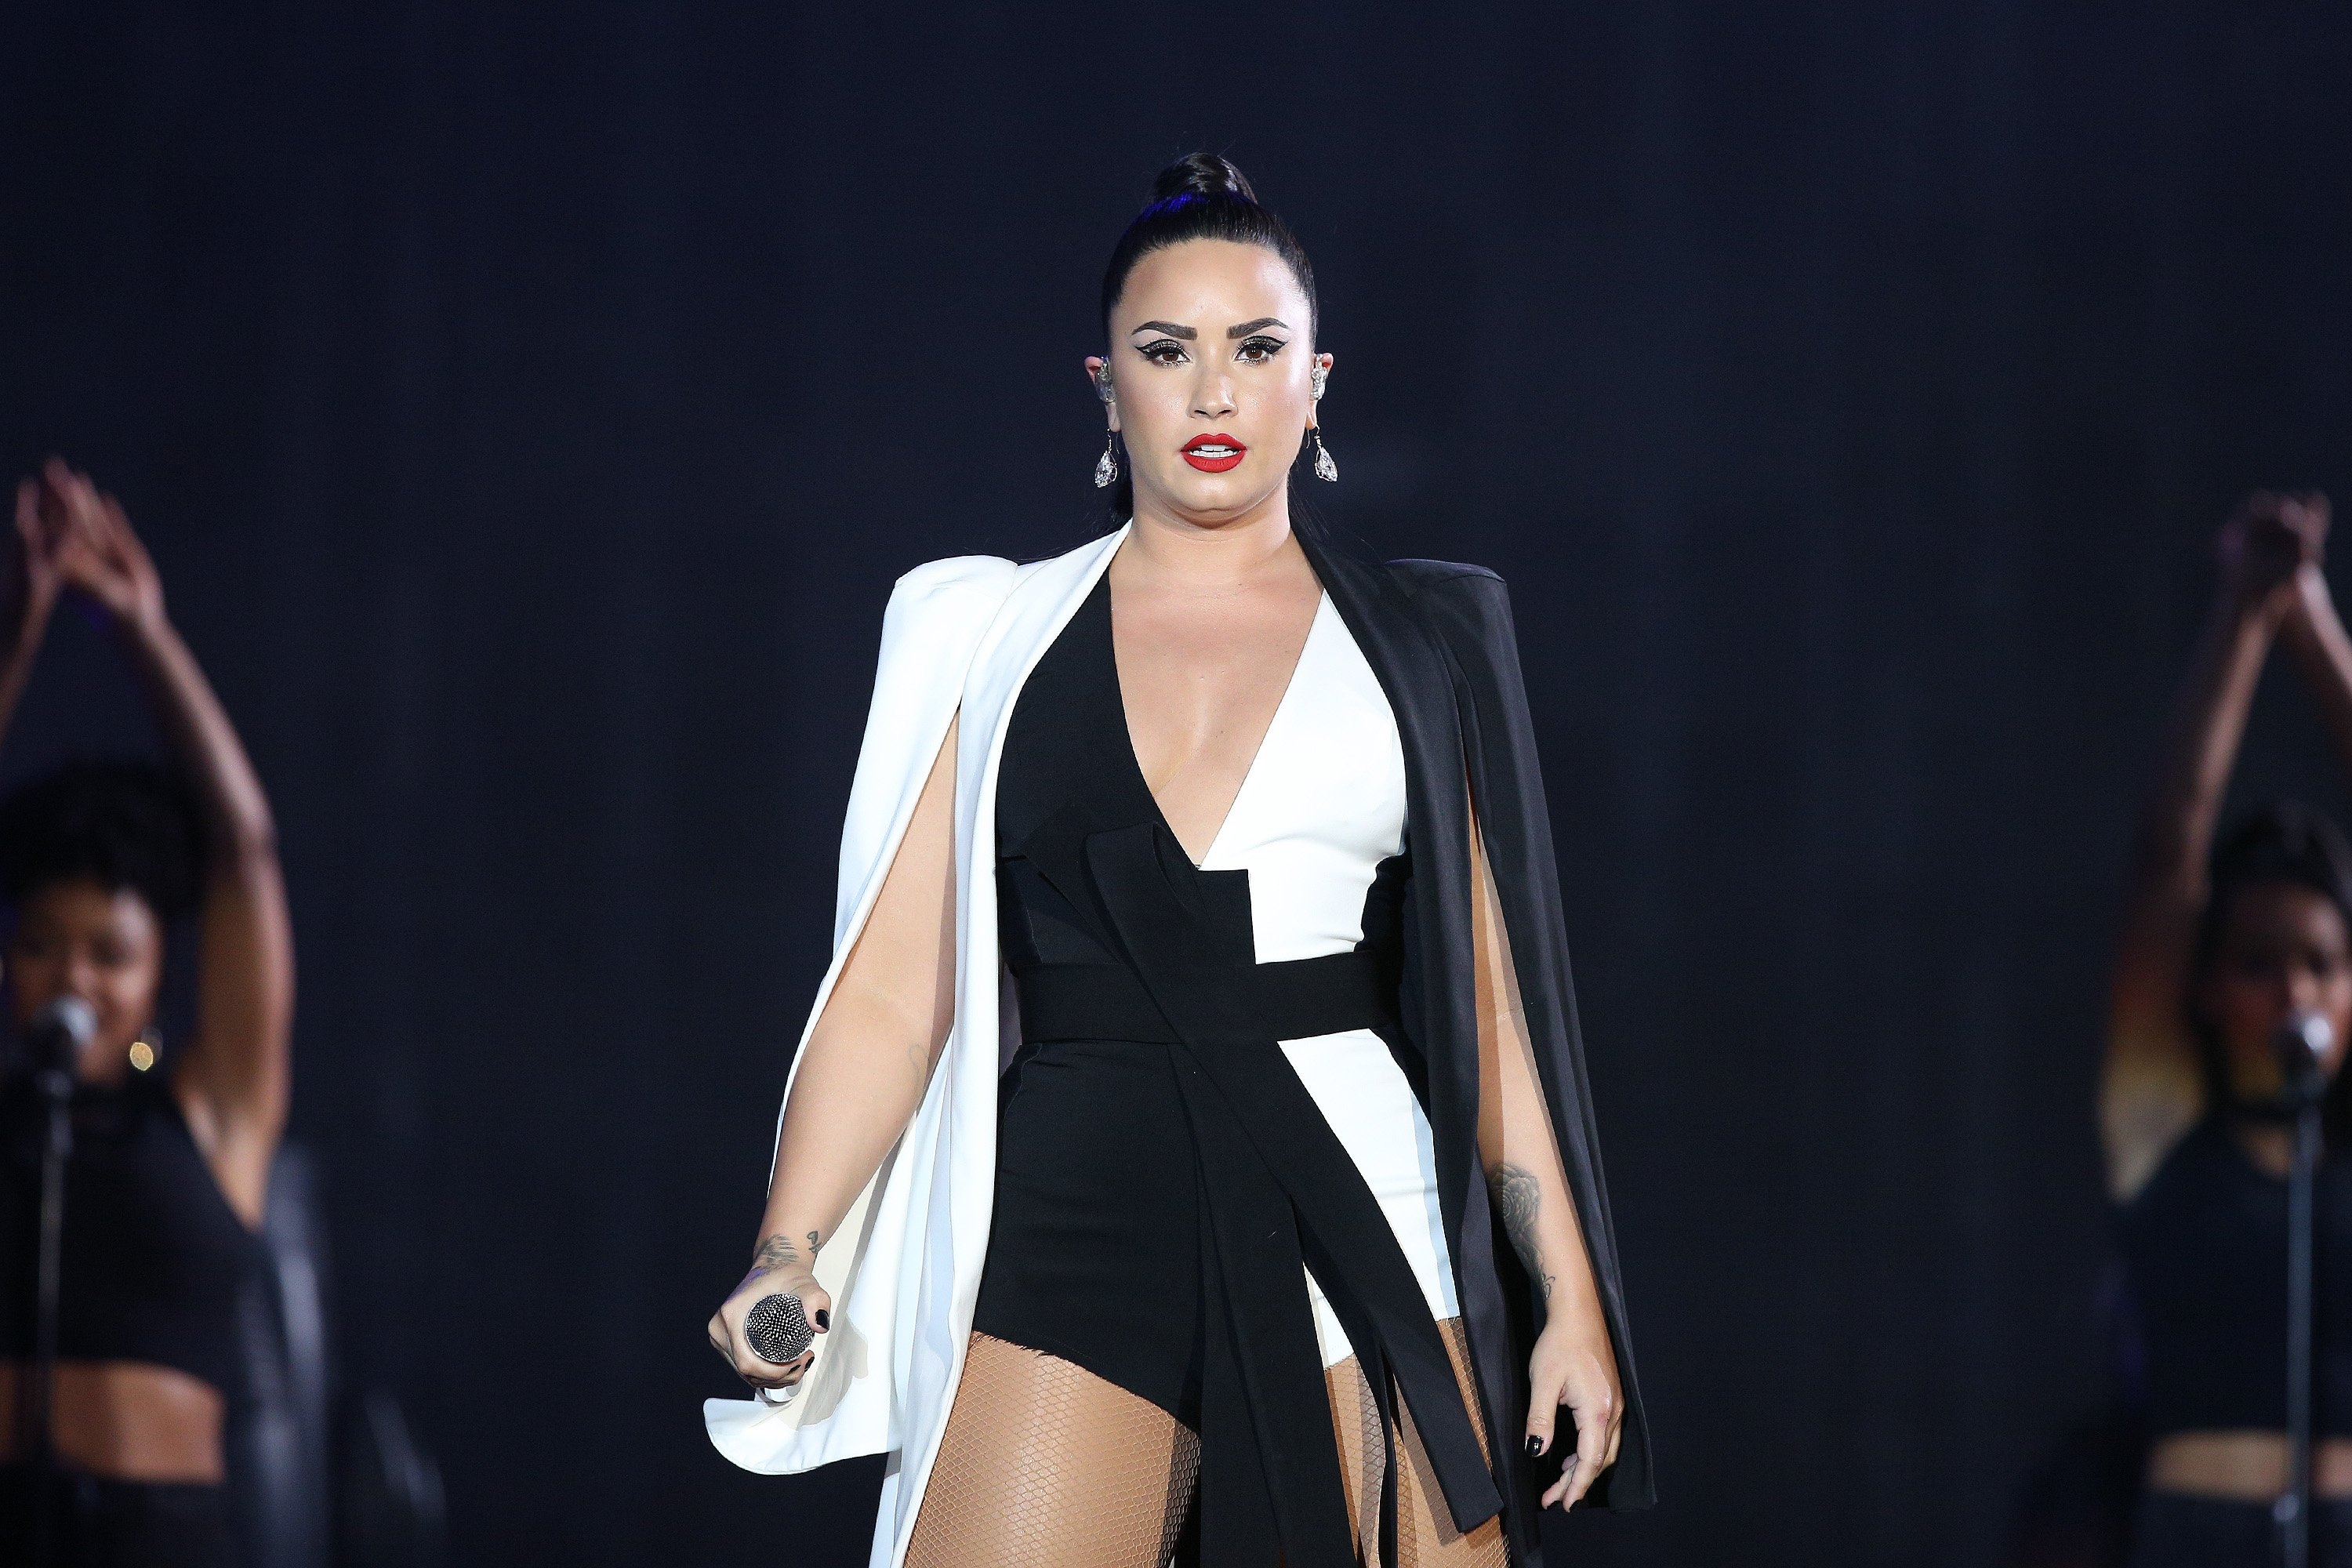 Demi Lovato performs at the Rock in Rio Lisboa 2018 music festival in Lisbon, Portugal, on June 24, 2018 | Photo: Getty Images